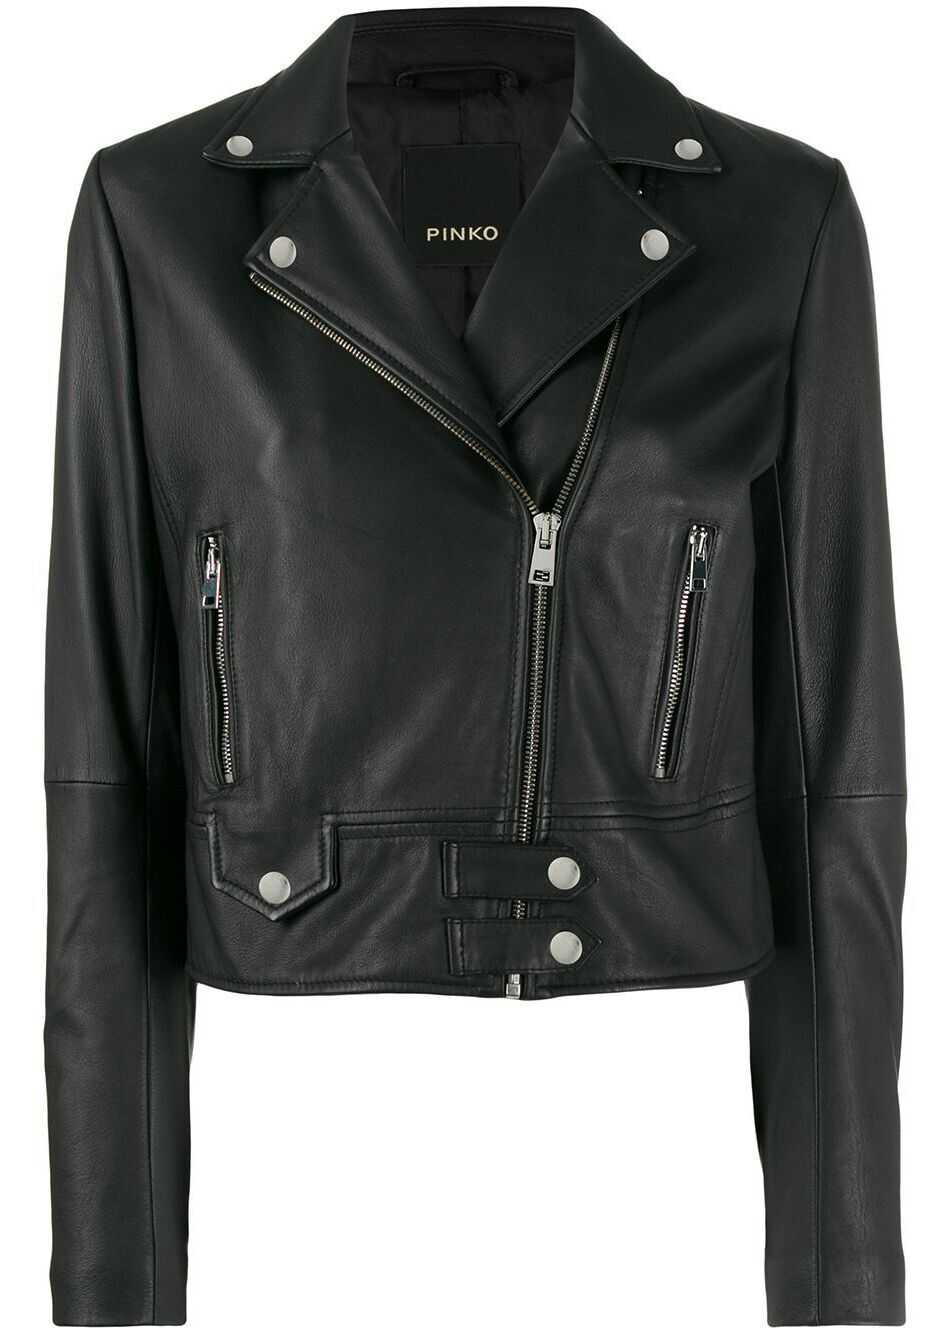 Pinko Leather Outerwear Jacket BLACK